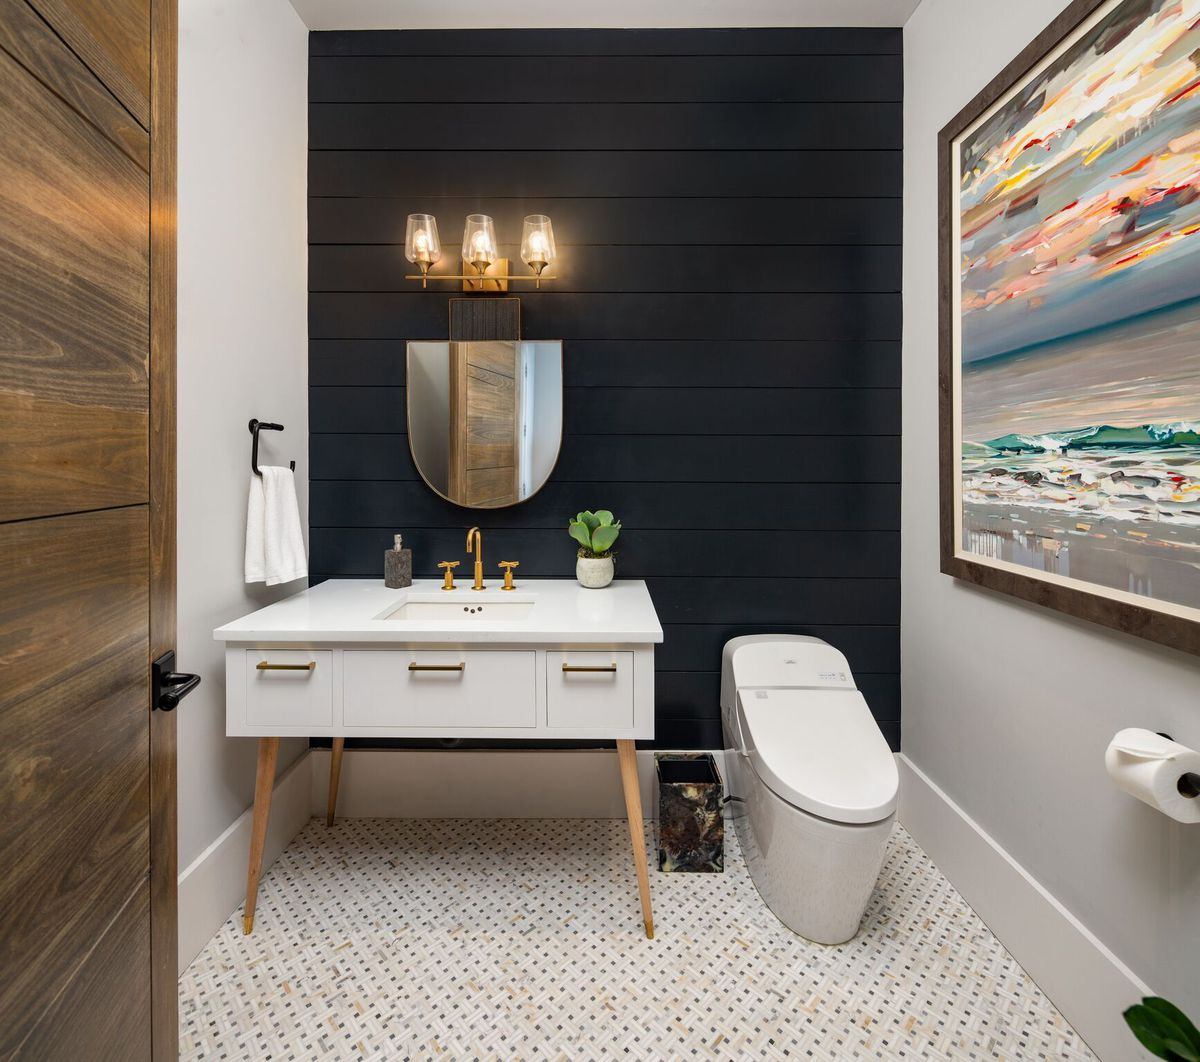 A bathroom with blue shiplap walls and a great art piece at right.